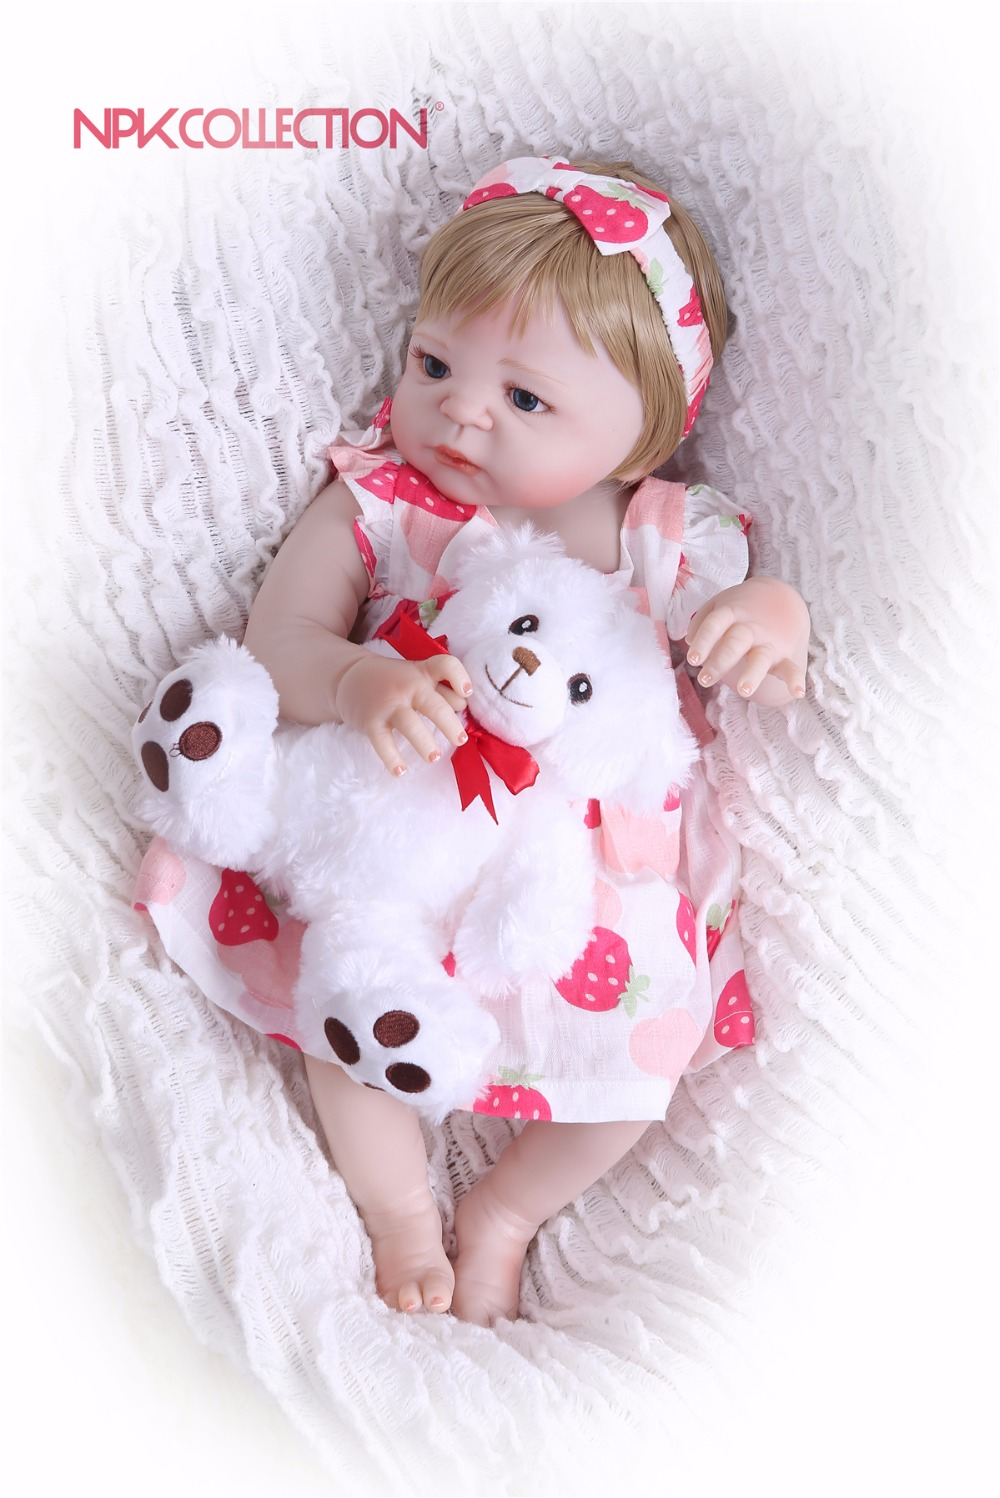 NPKCOLLECTION New Arrival pink Baby Doll Full Silicone Body Lifelike Reborn Princess Girl Doll Handmade Baby Toy Kids Gifts new arrival 23 57cm baby girl doll full silicone body lifelike bebe reborn bonecas handmade baby toy for kids christmas gifts